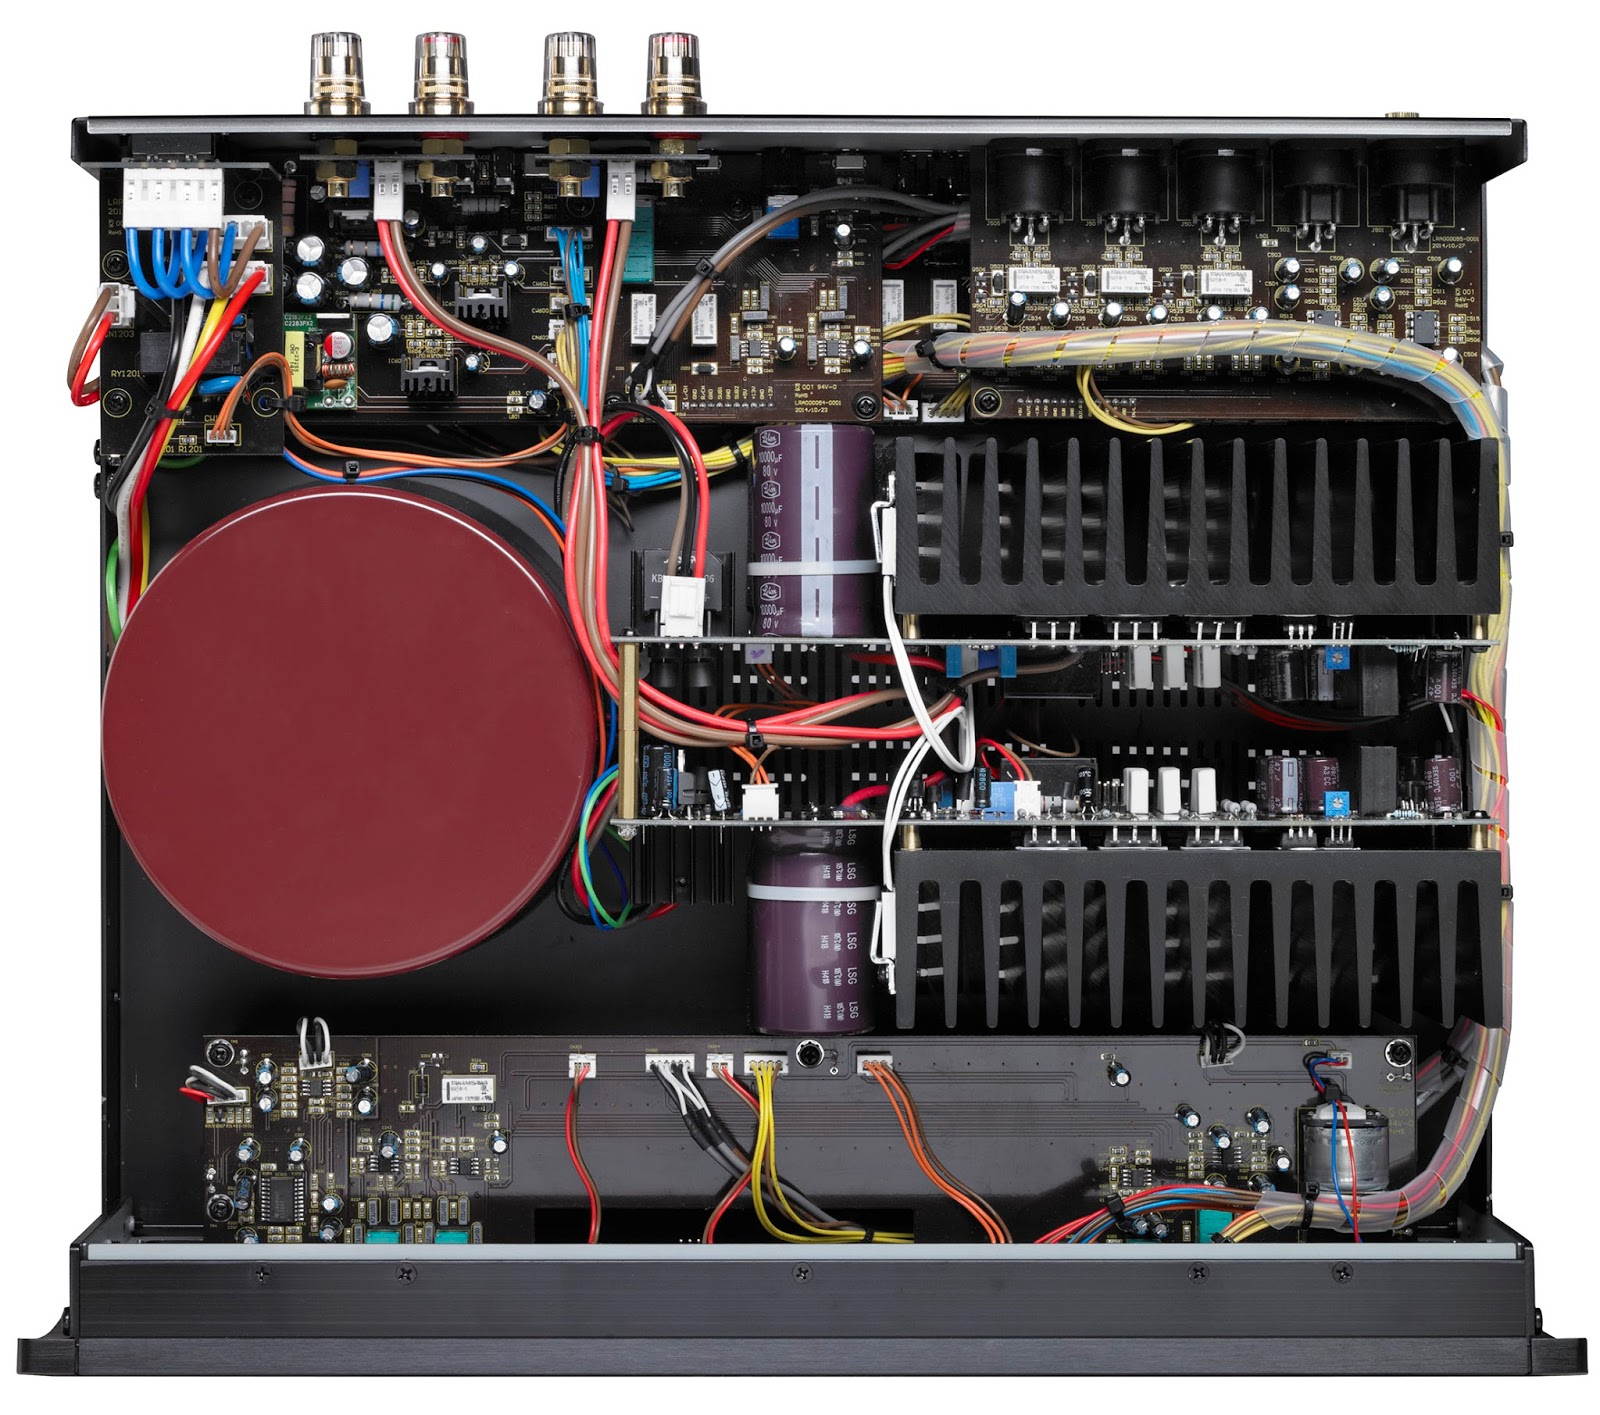 Everything Audio Network Audiophile Reviewparasound Halointegrated Tone Control Include Subwoofer Out Quality Parts Design Make The Halo A Fantastic Value